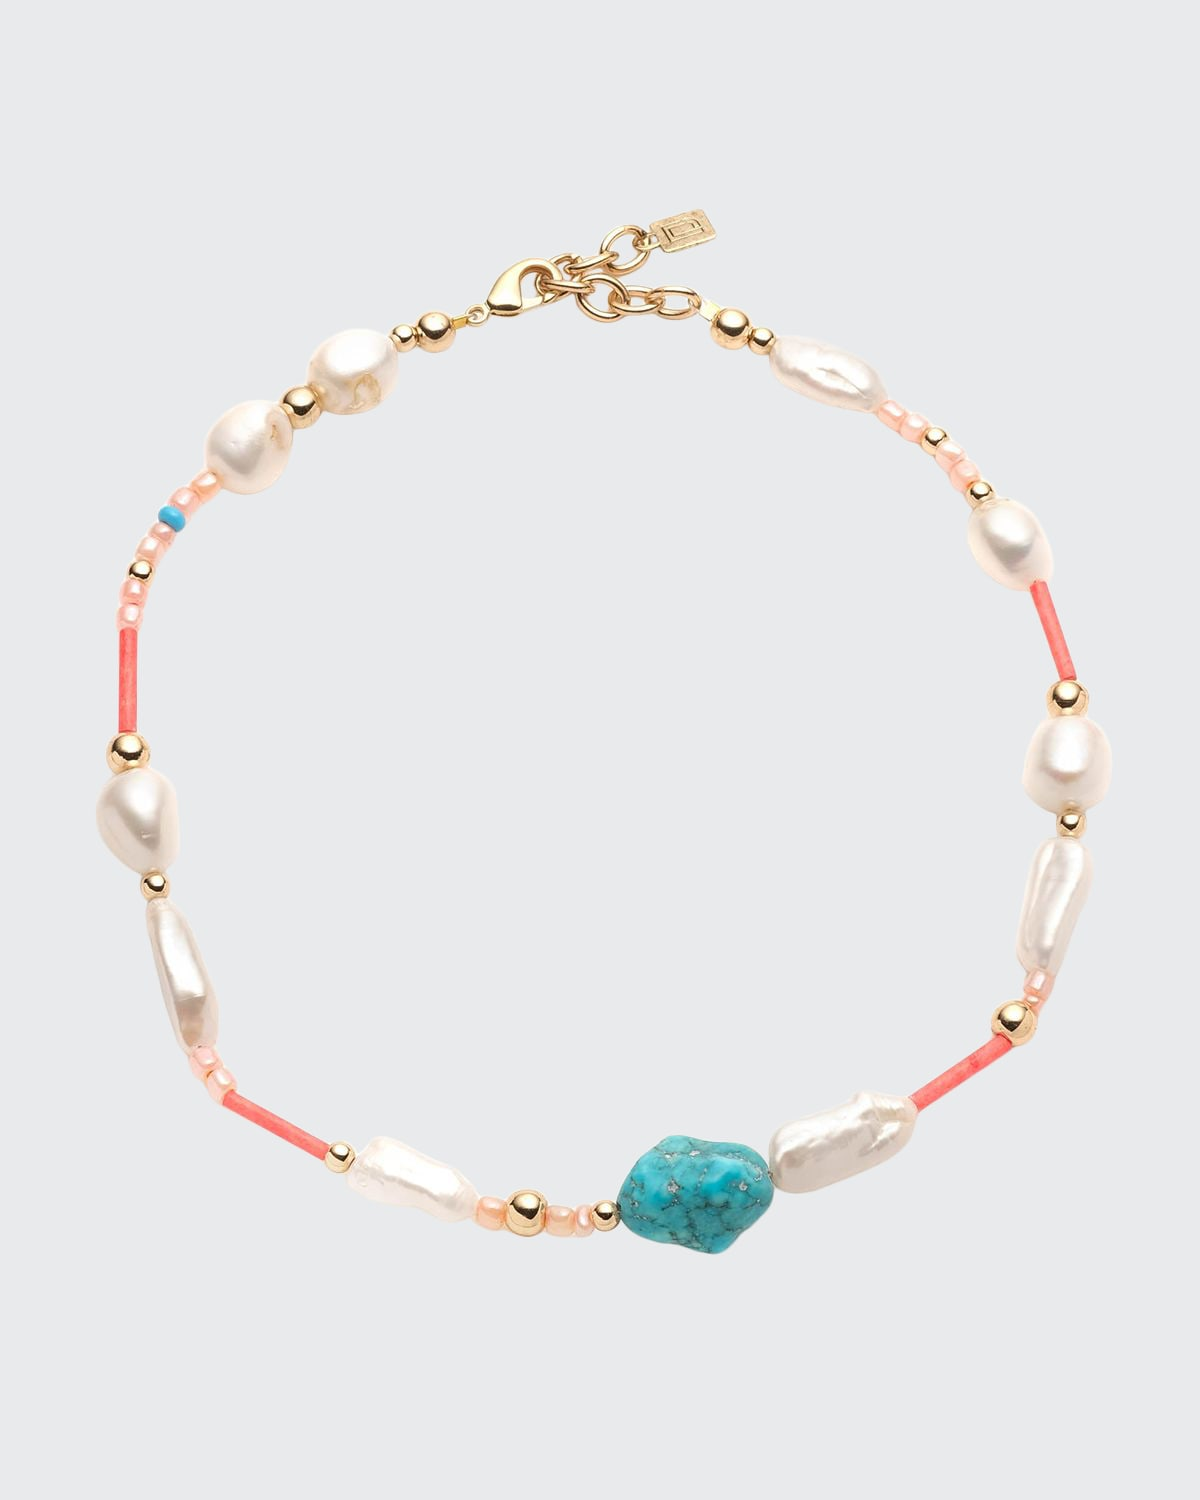 Streisand Bead and Pearl Necklace